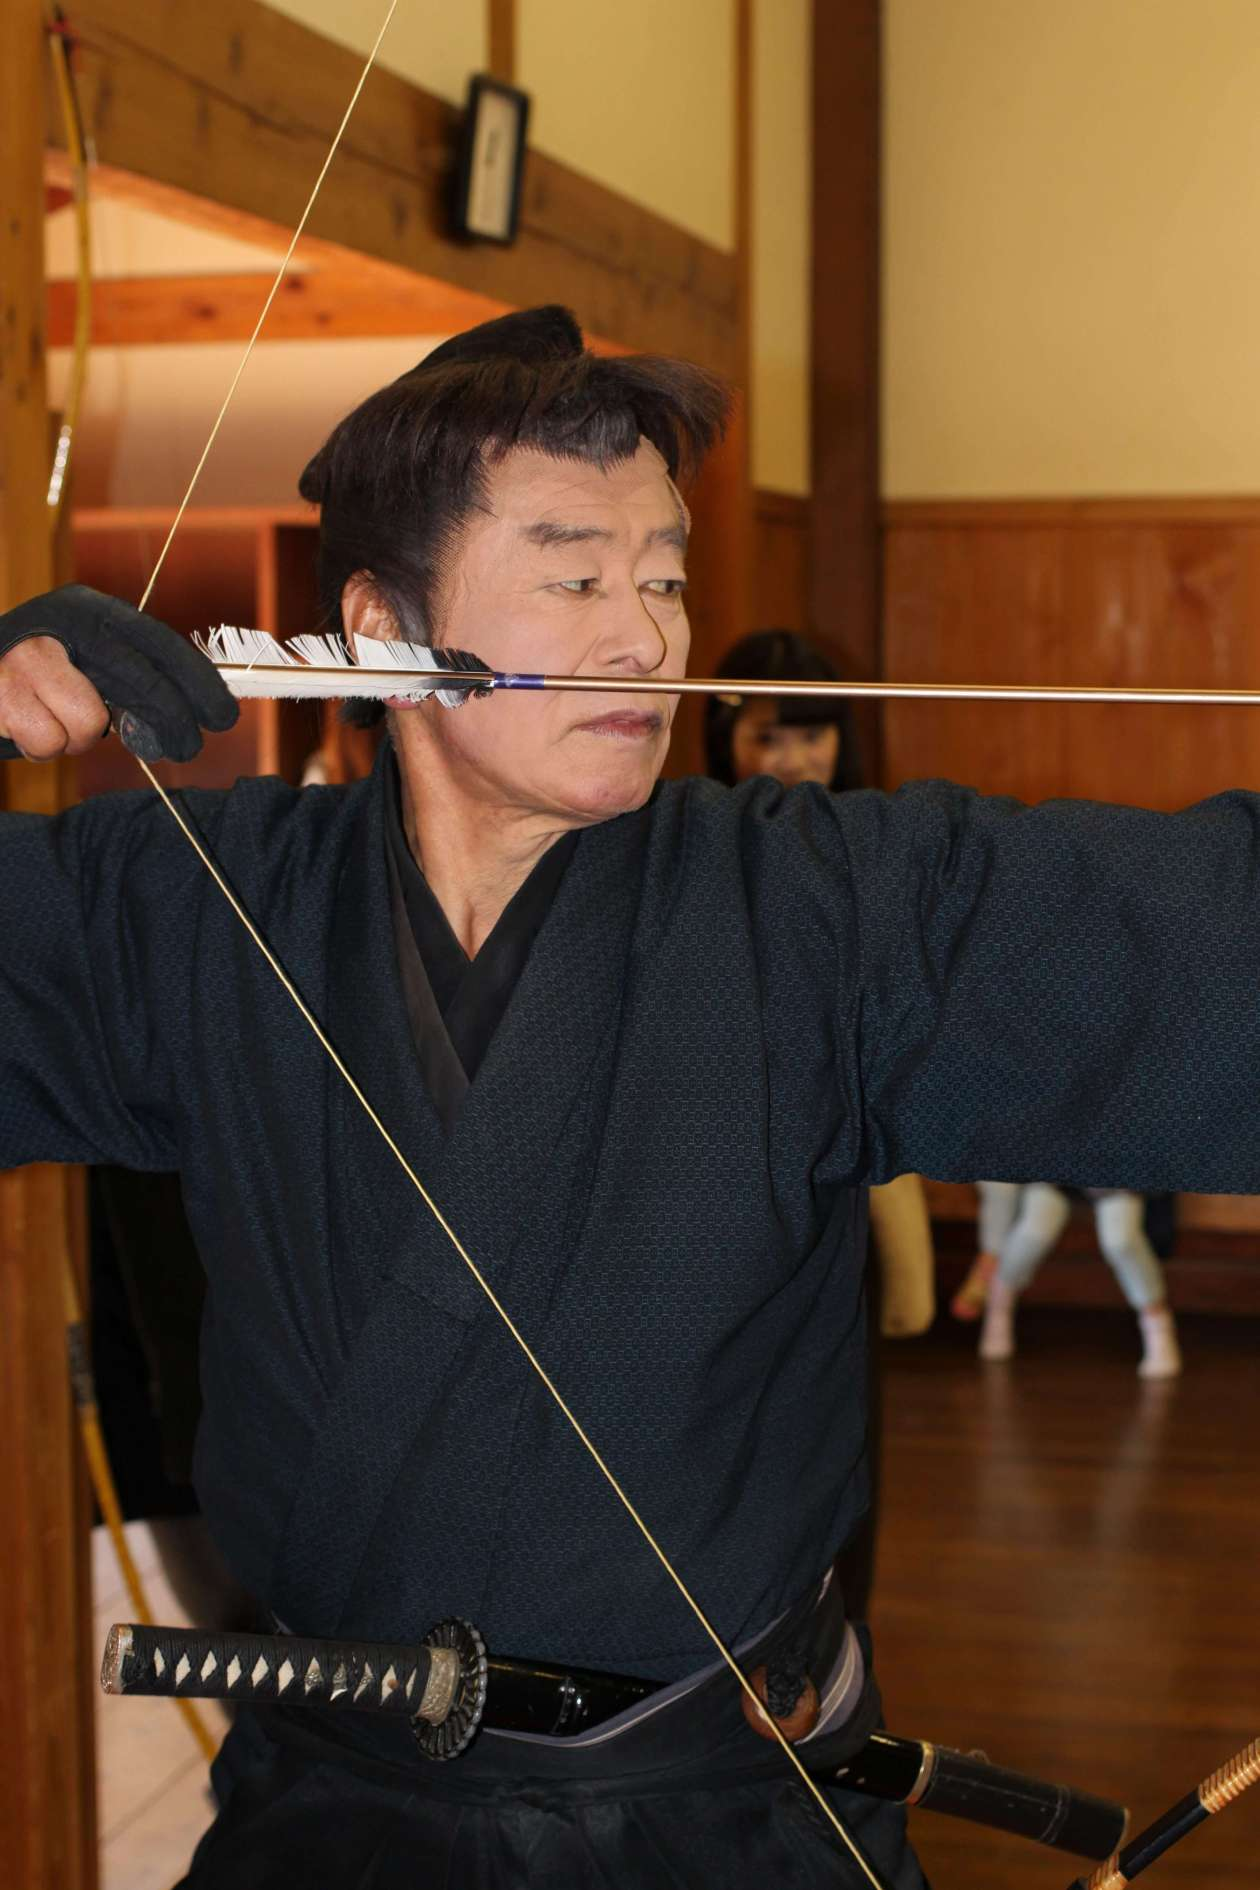 Samurai (acting) demonstrating Japanese archery